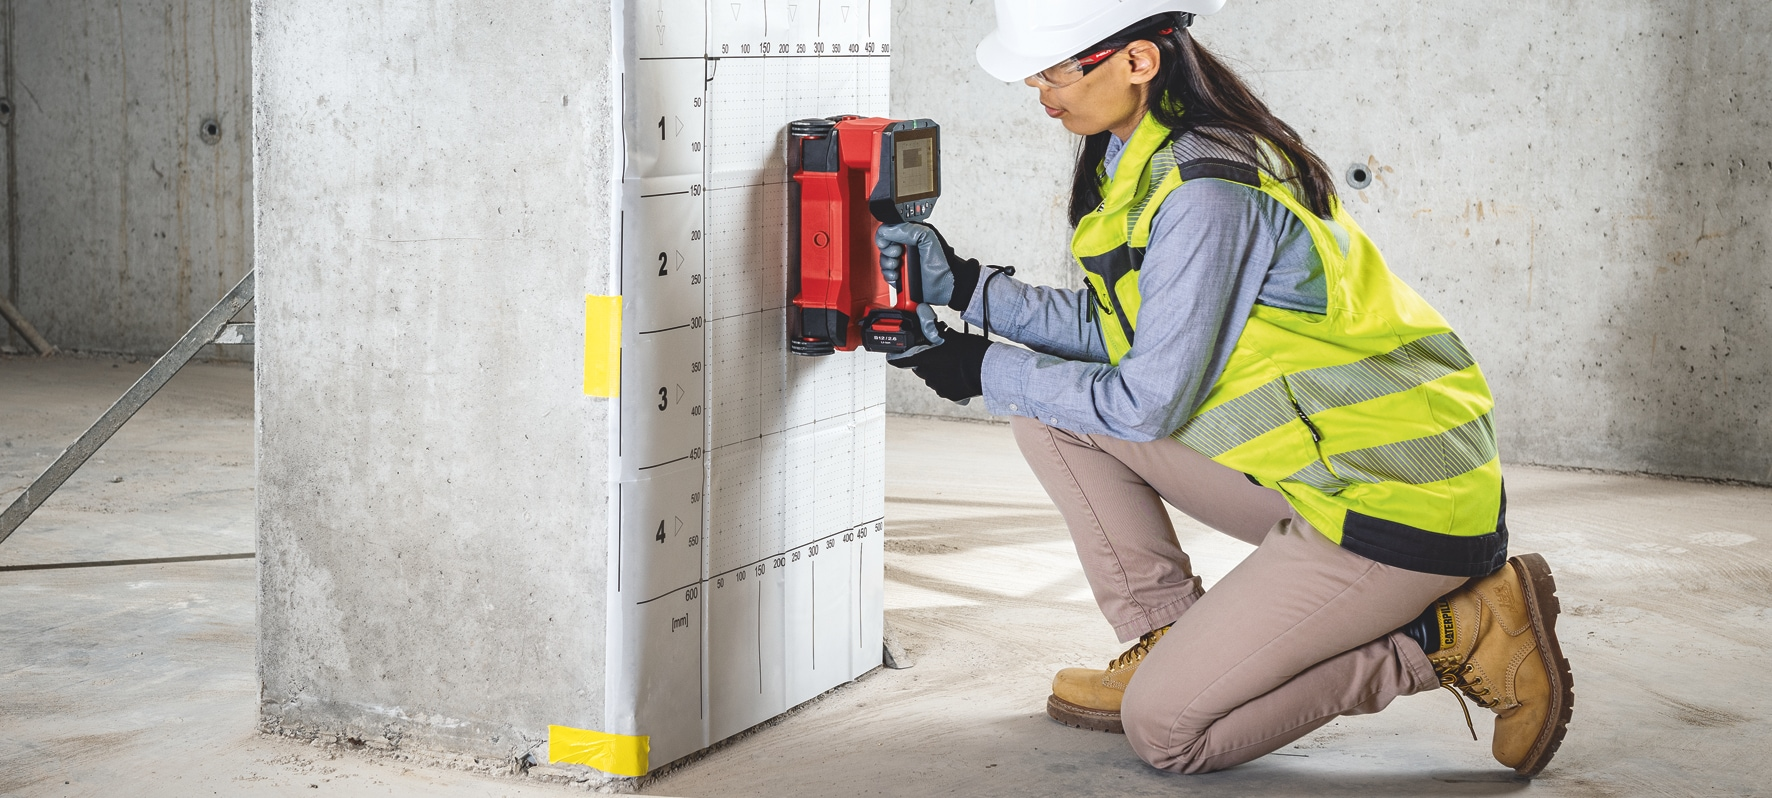 Hilti detection systems